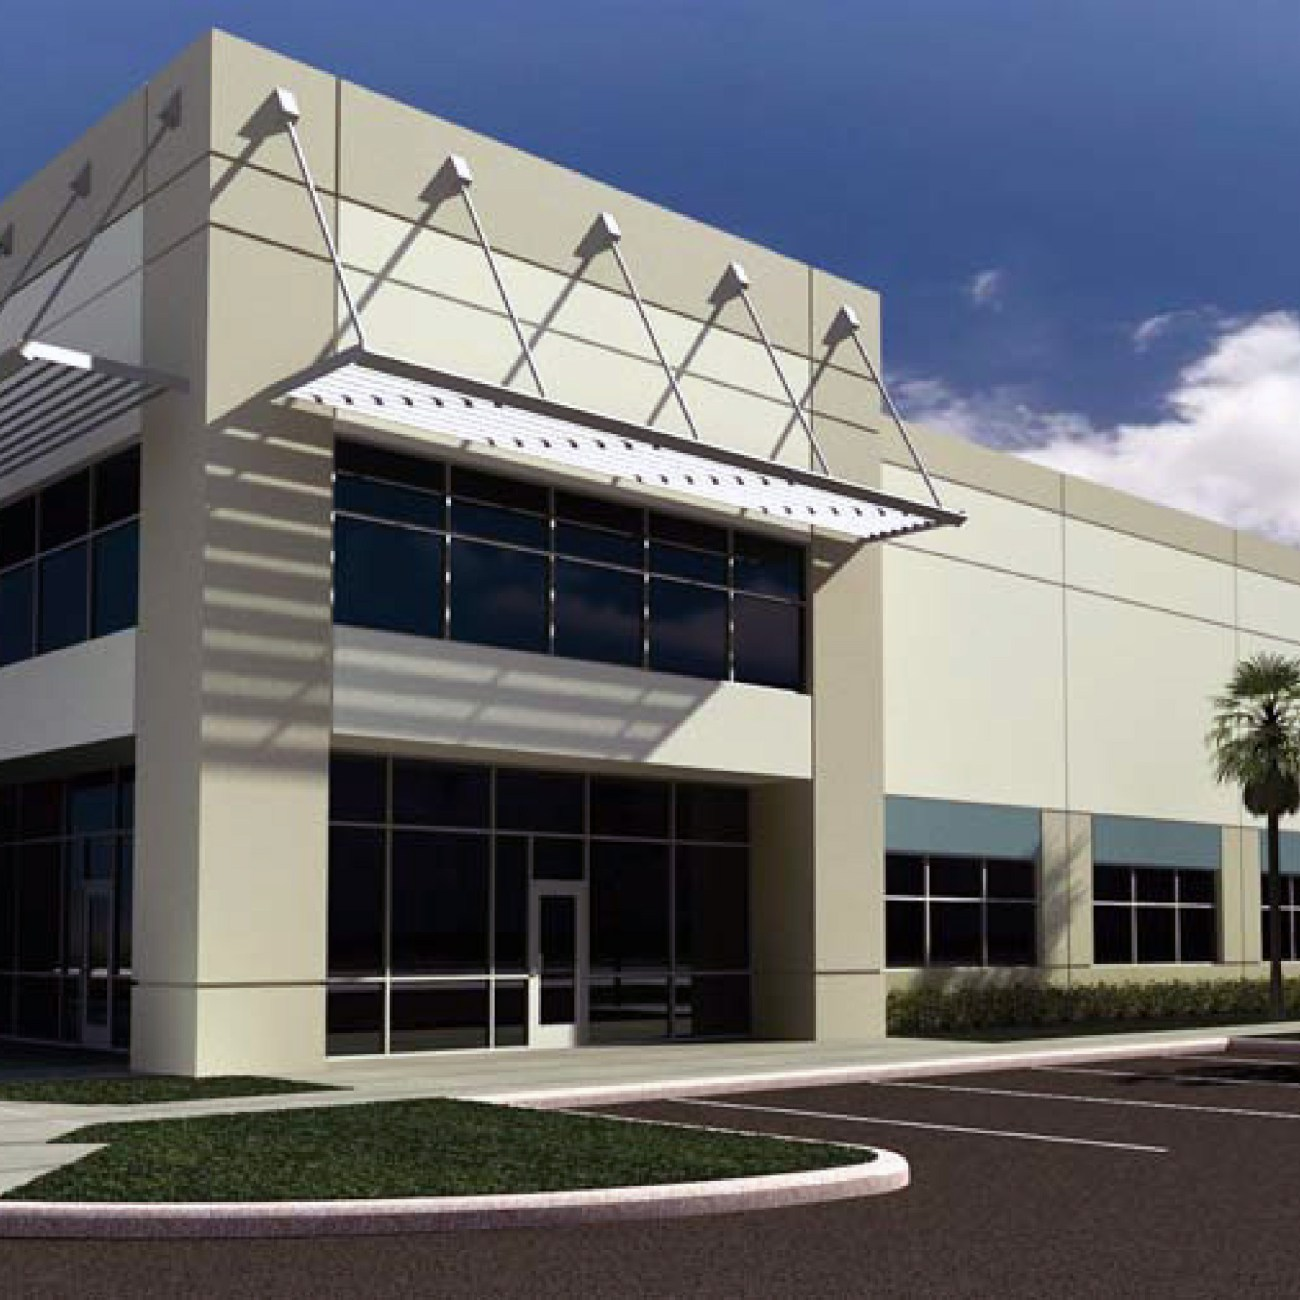 Commercial Lighting Company Tampa Fl: Cushman & Wakefield Negotiates SLV Lighting's Relocation